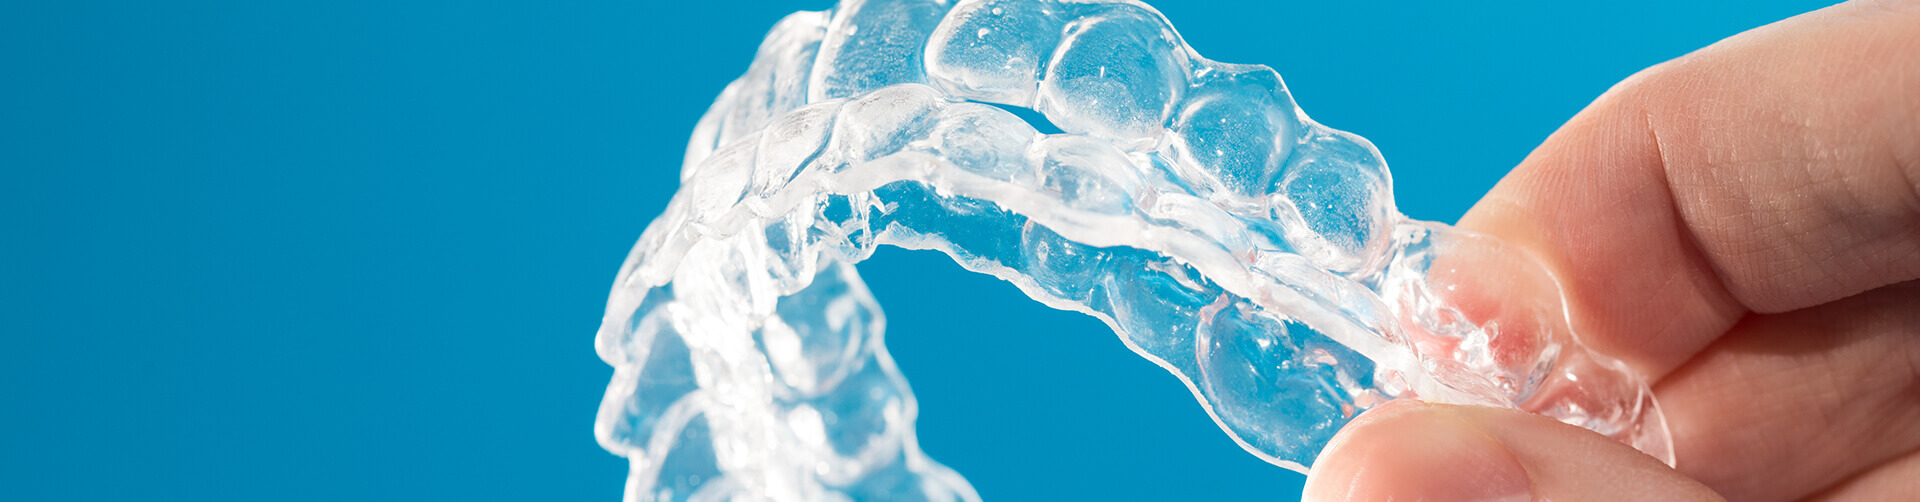 closeup of a person holding a set of Invisalign clear aligners